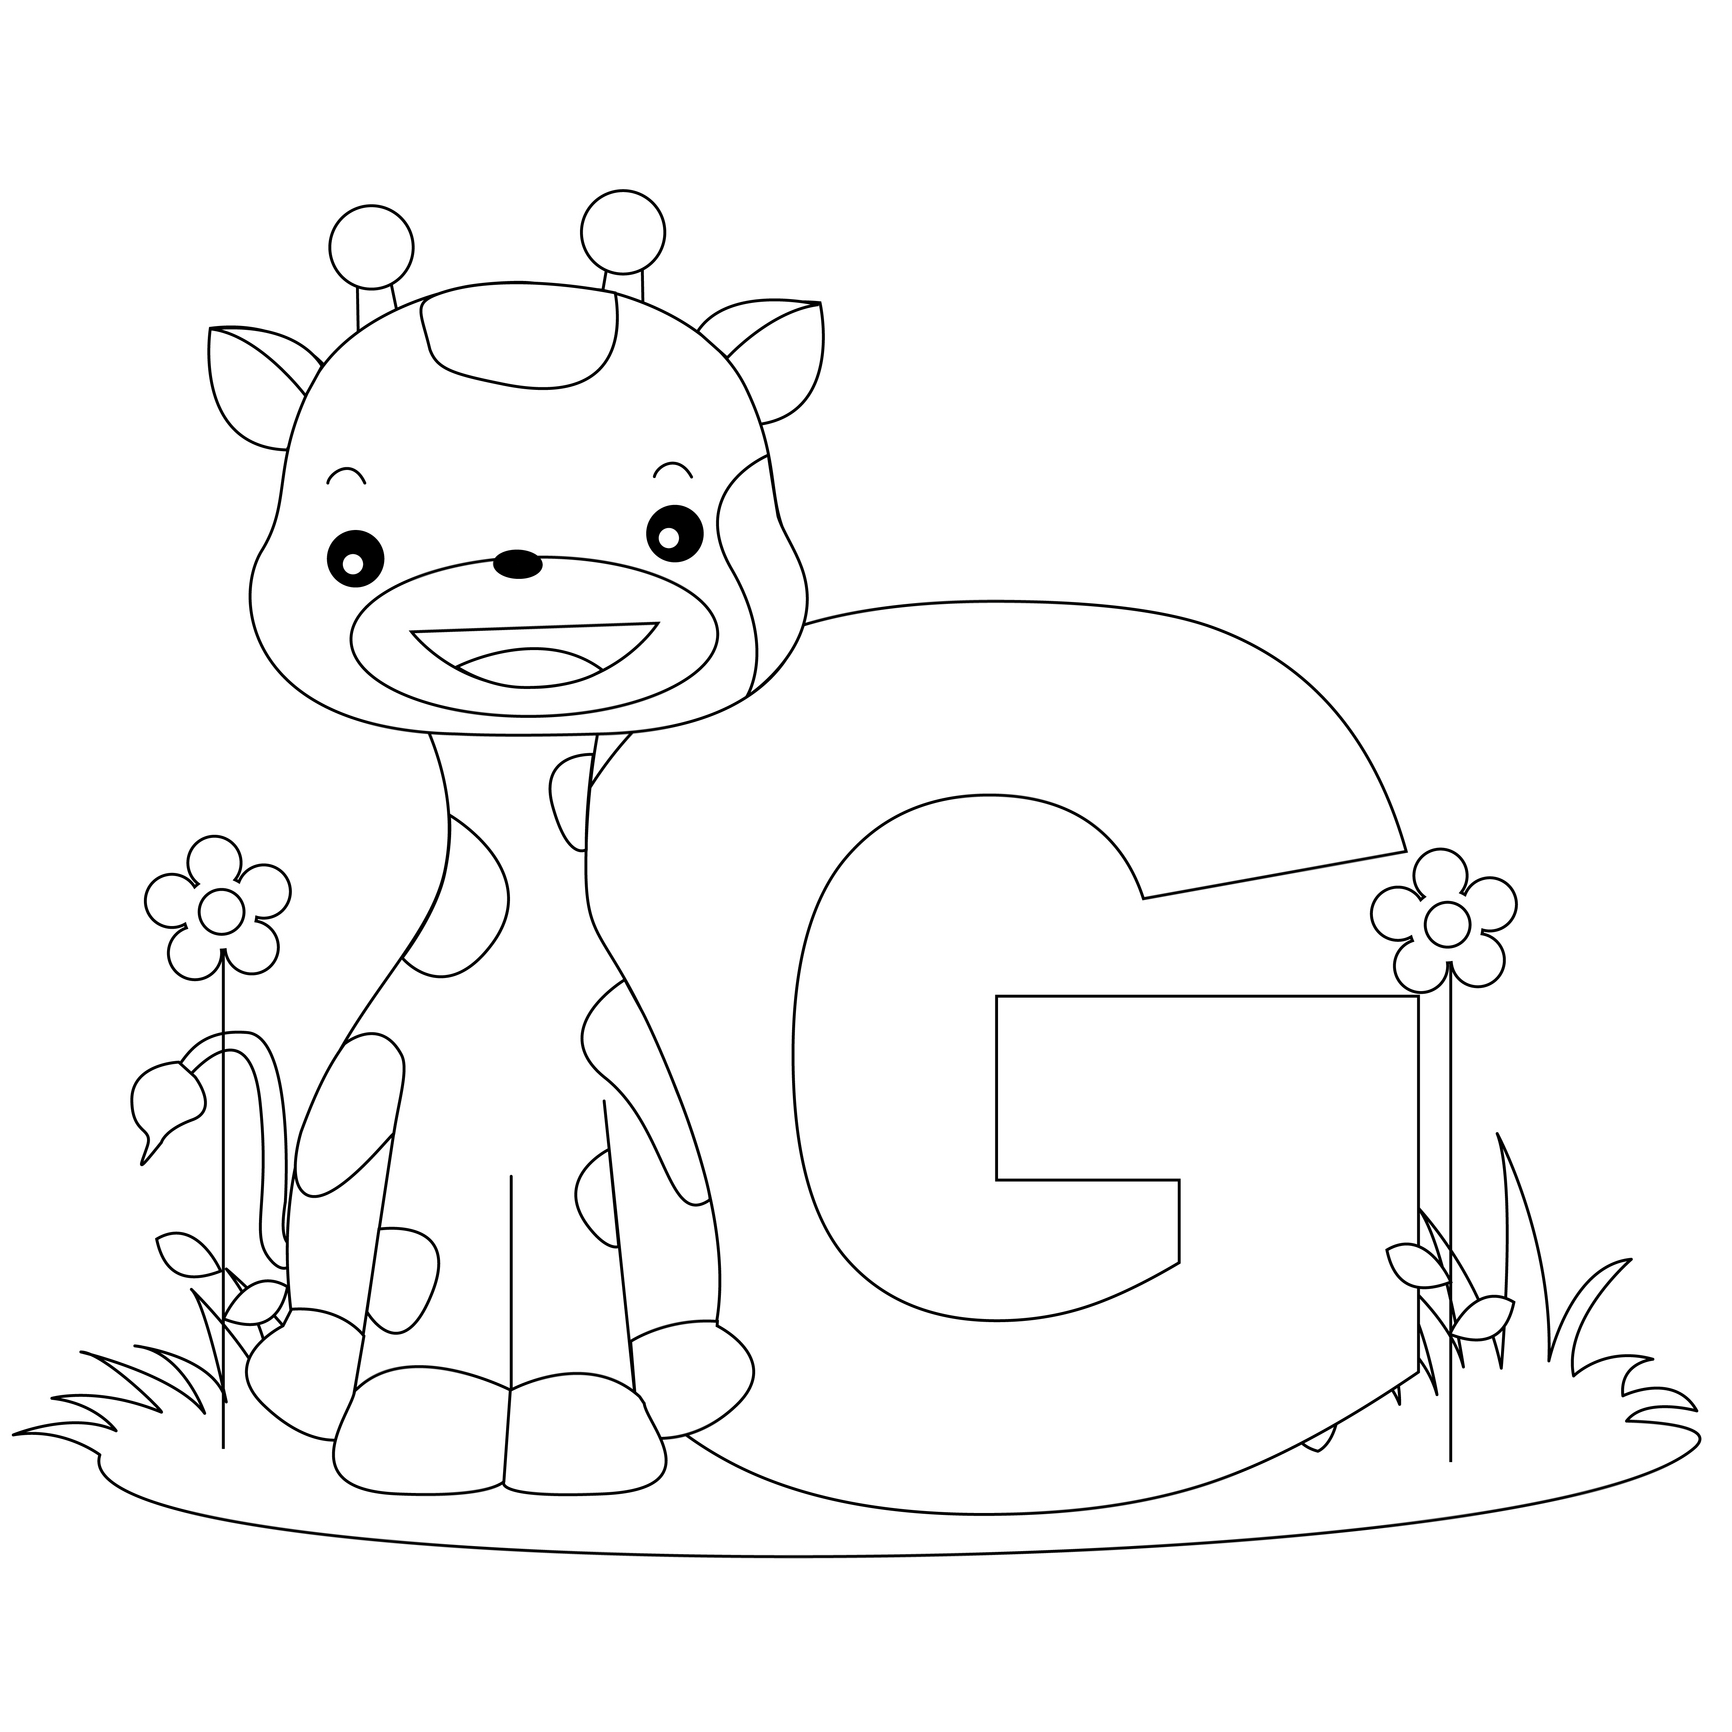 Coloring Pages Letters Of The Alphabet At Getdrawings Com Free For